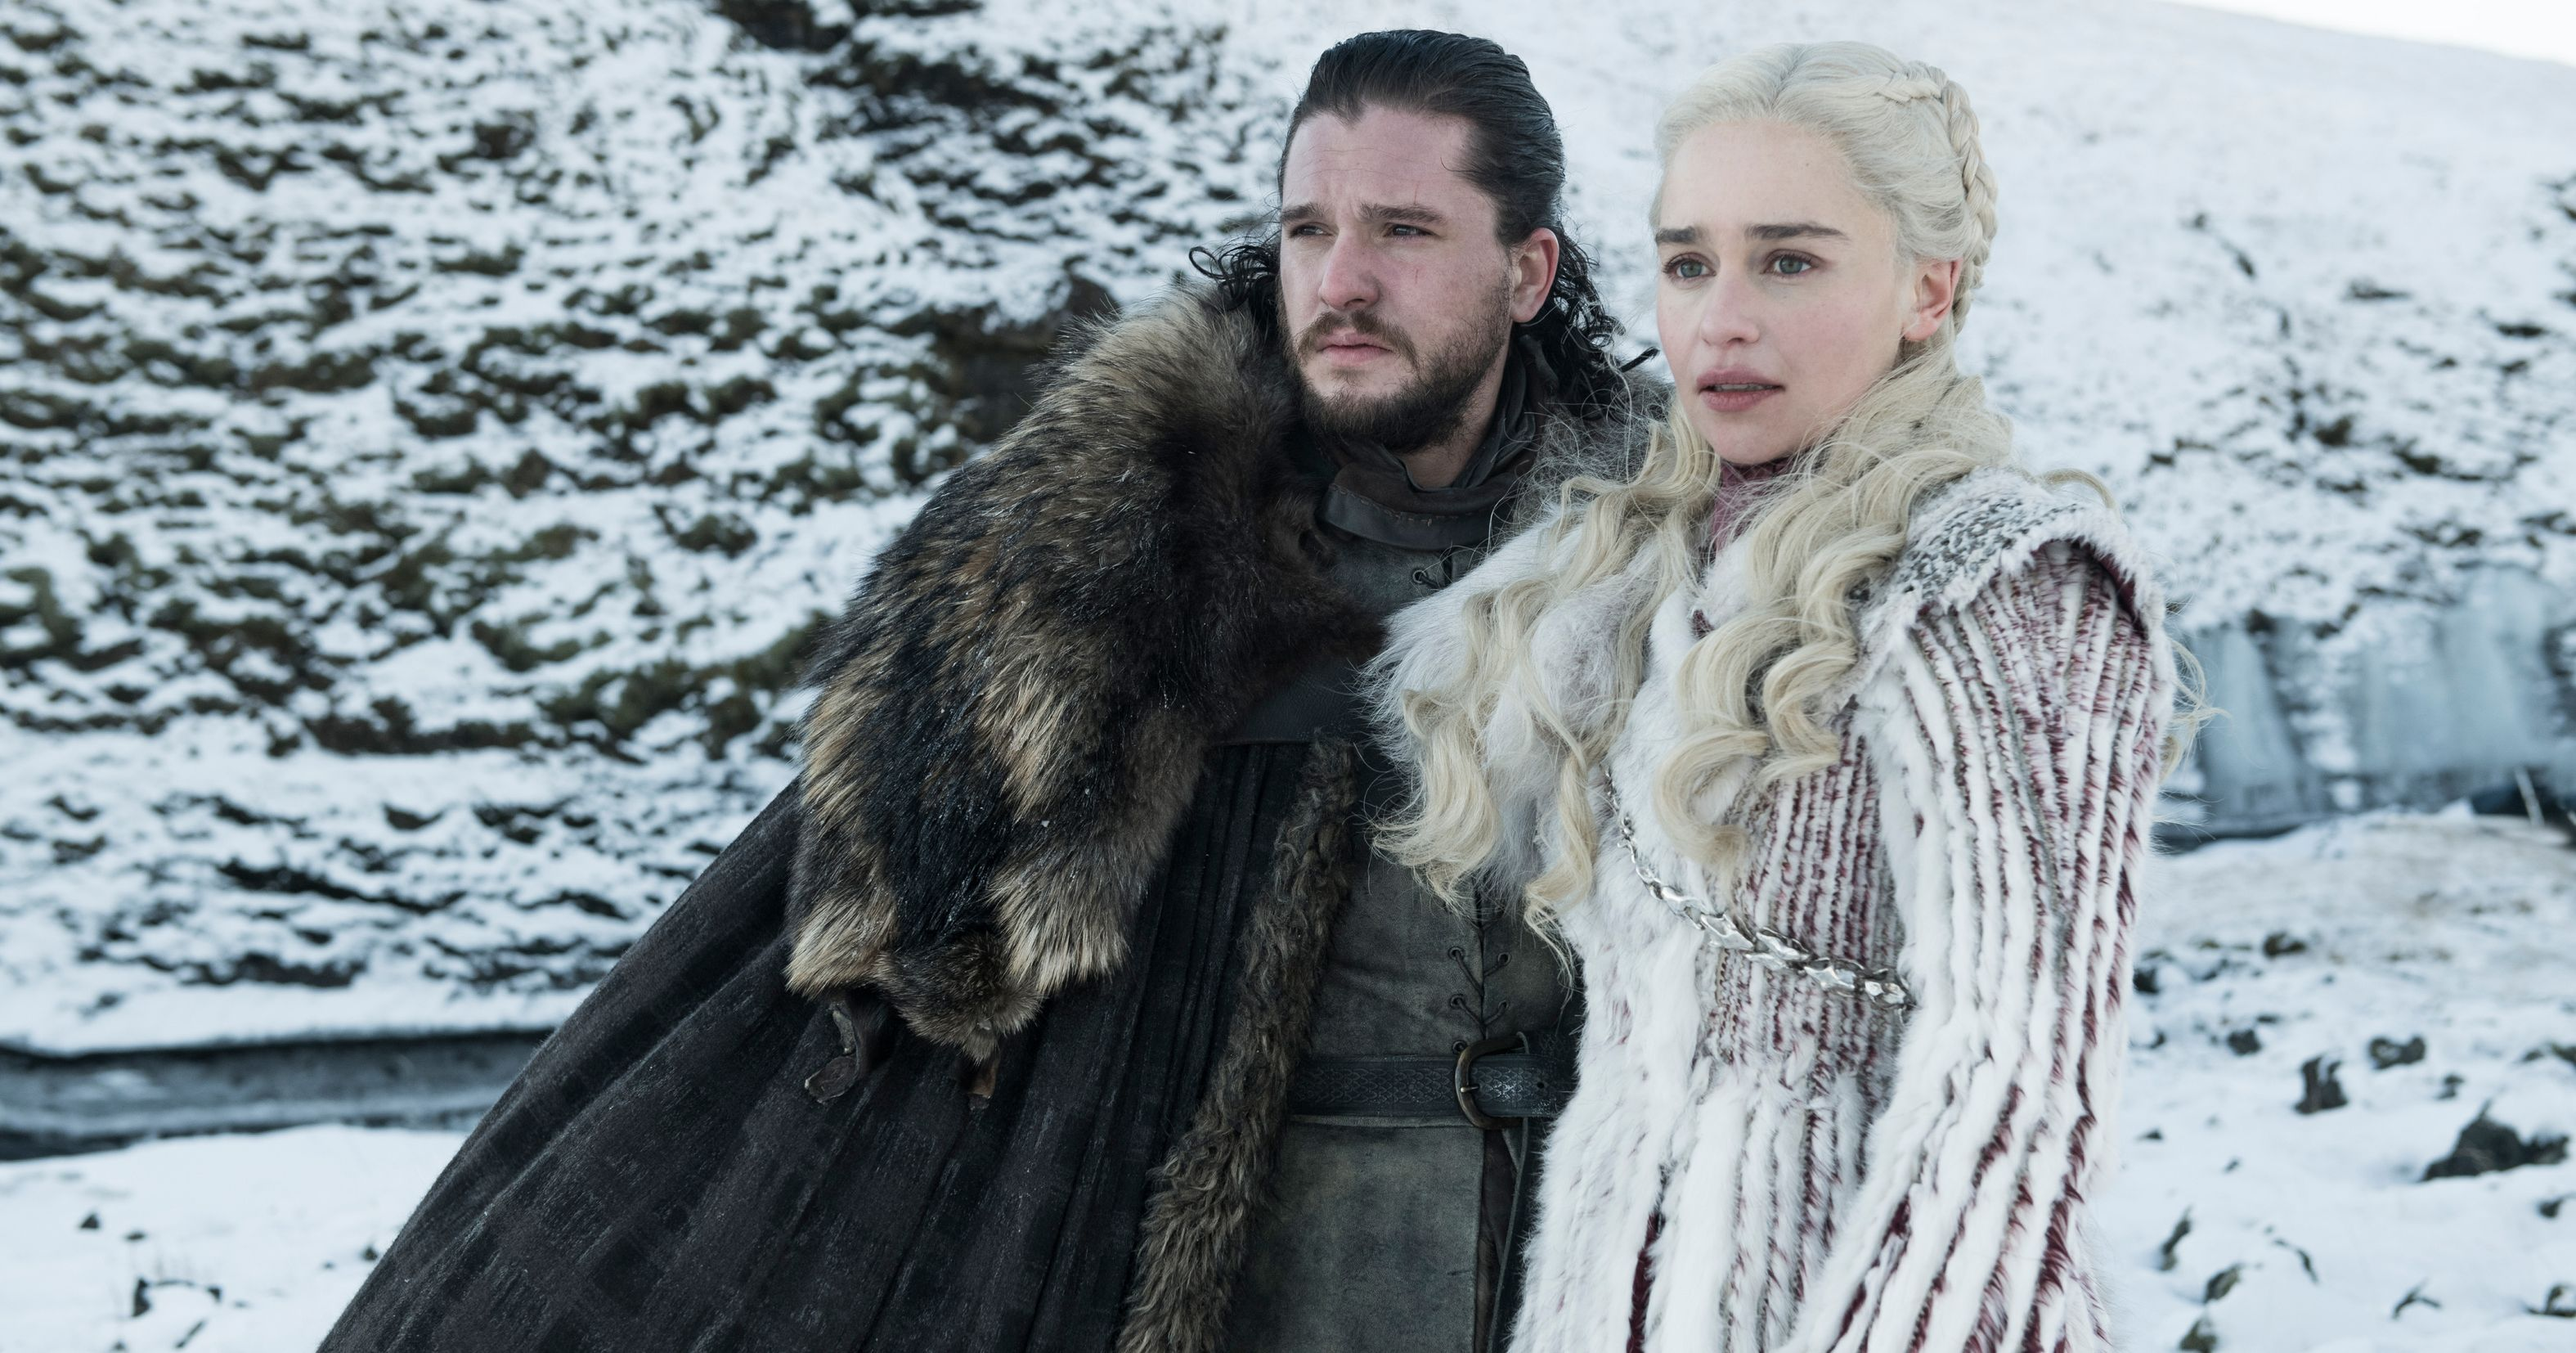 Expectativas para a 8ª temporada de Game of Thrones